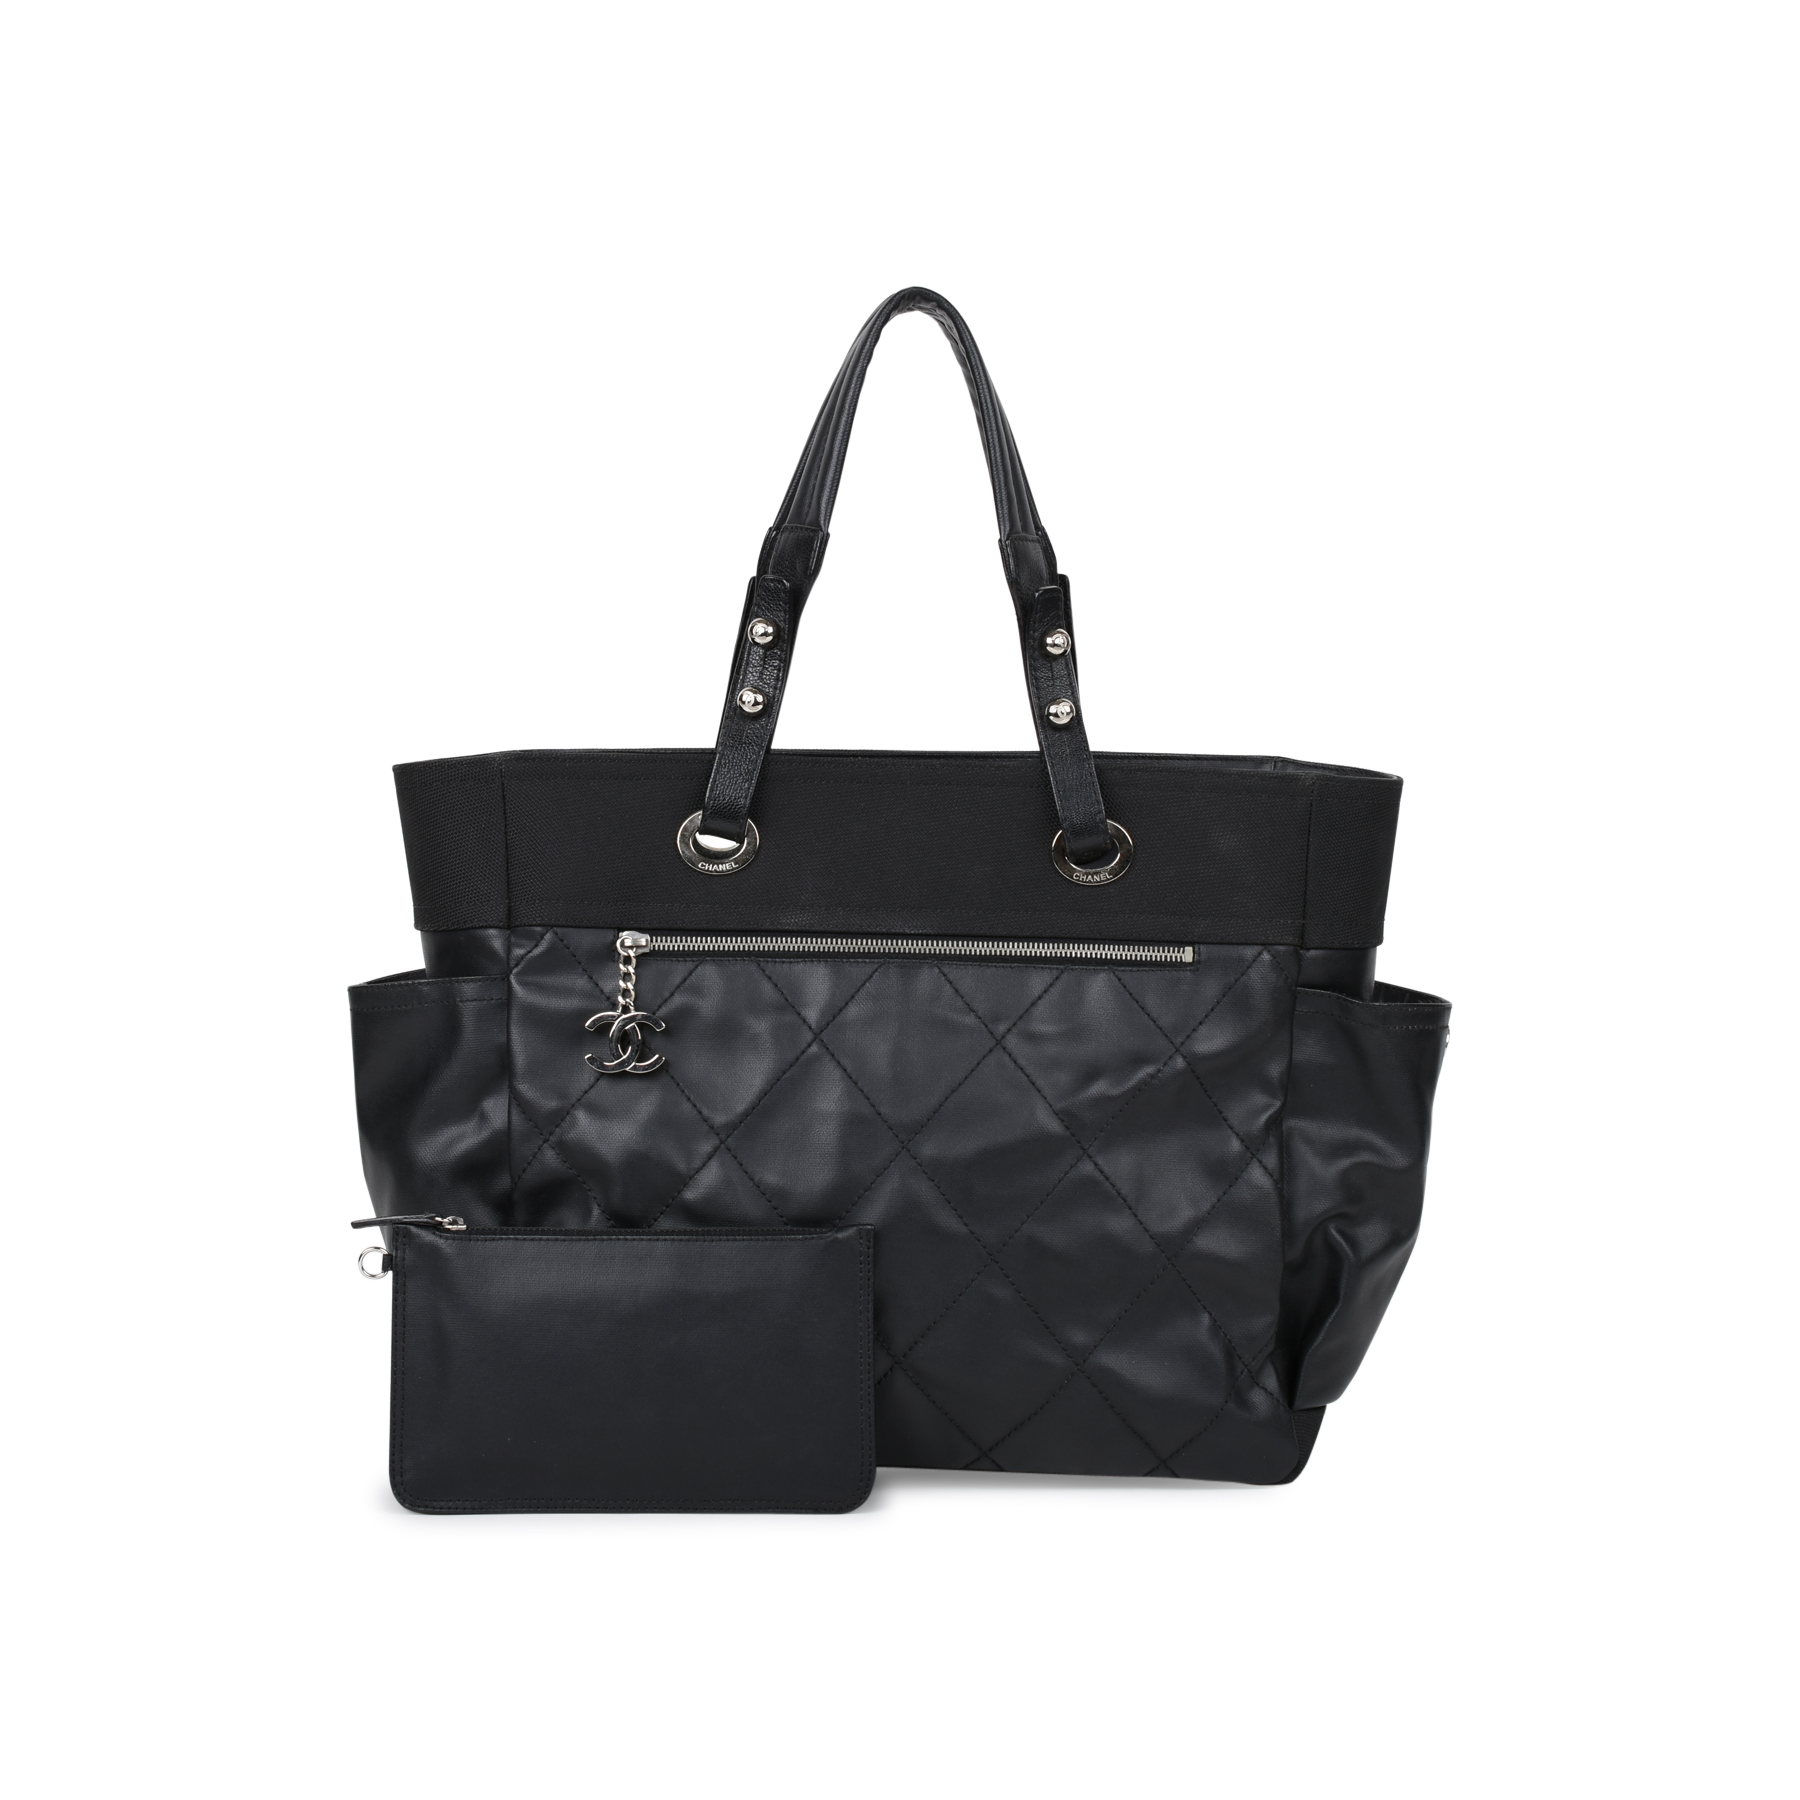 c7e060d032a3 Authentic Second Hand Chanel Paris Biarritz Tote Bag (PSS-523-00002) | THE  FIFTH COLLECTION